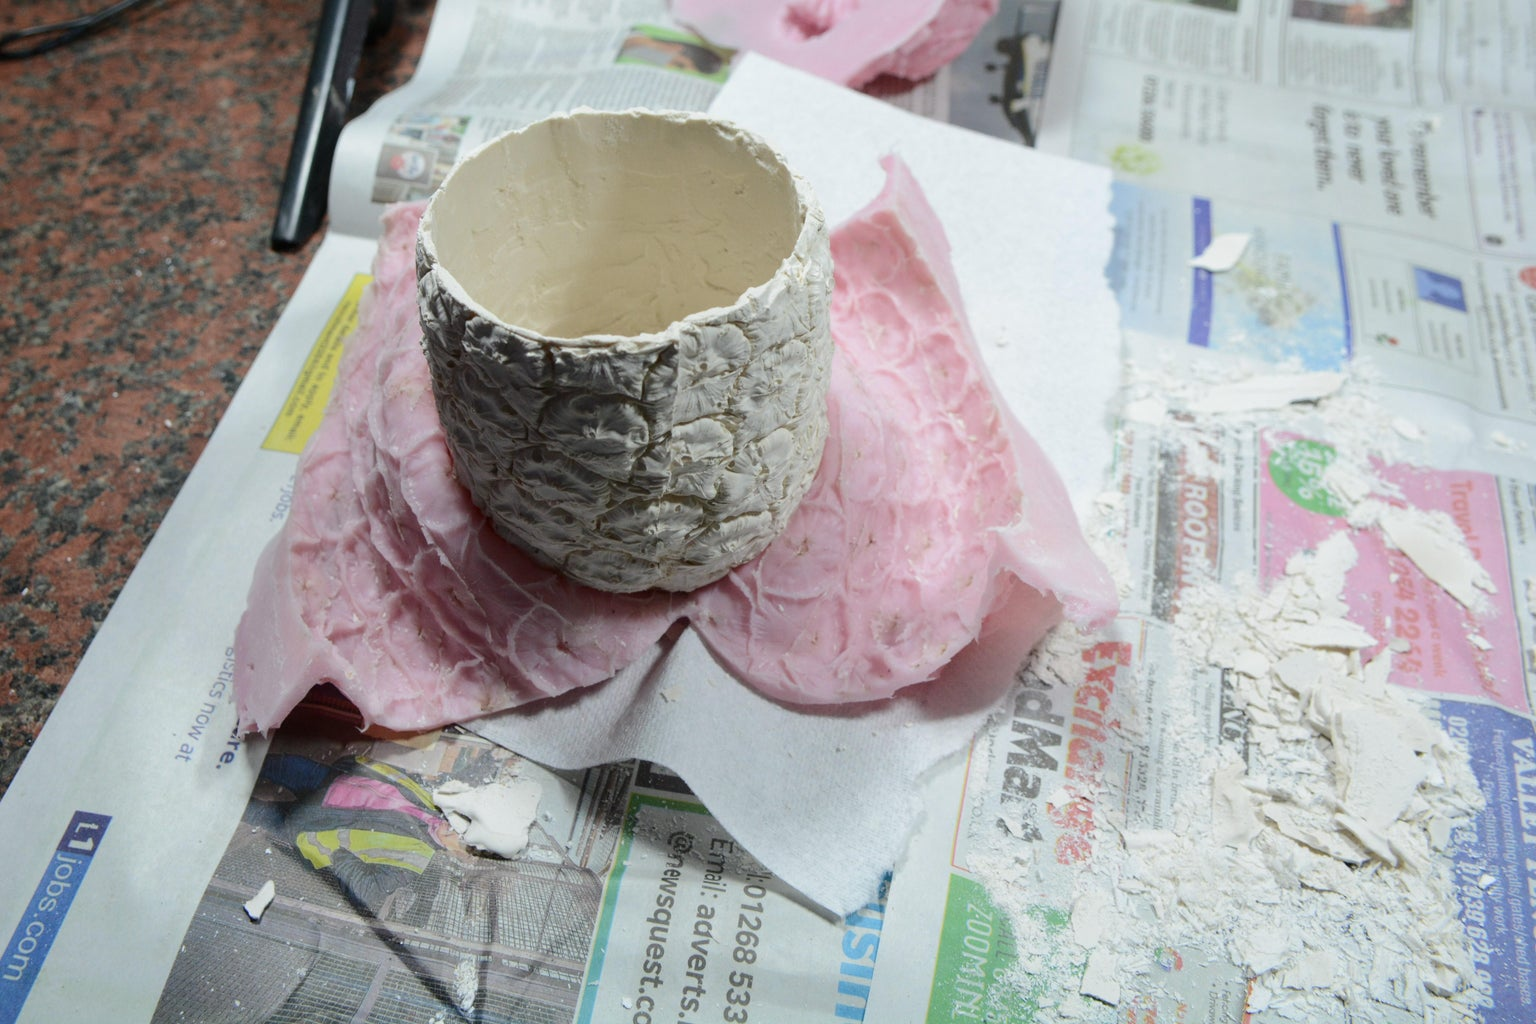 Pineapple- Cast Removal and Painting